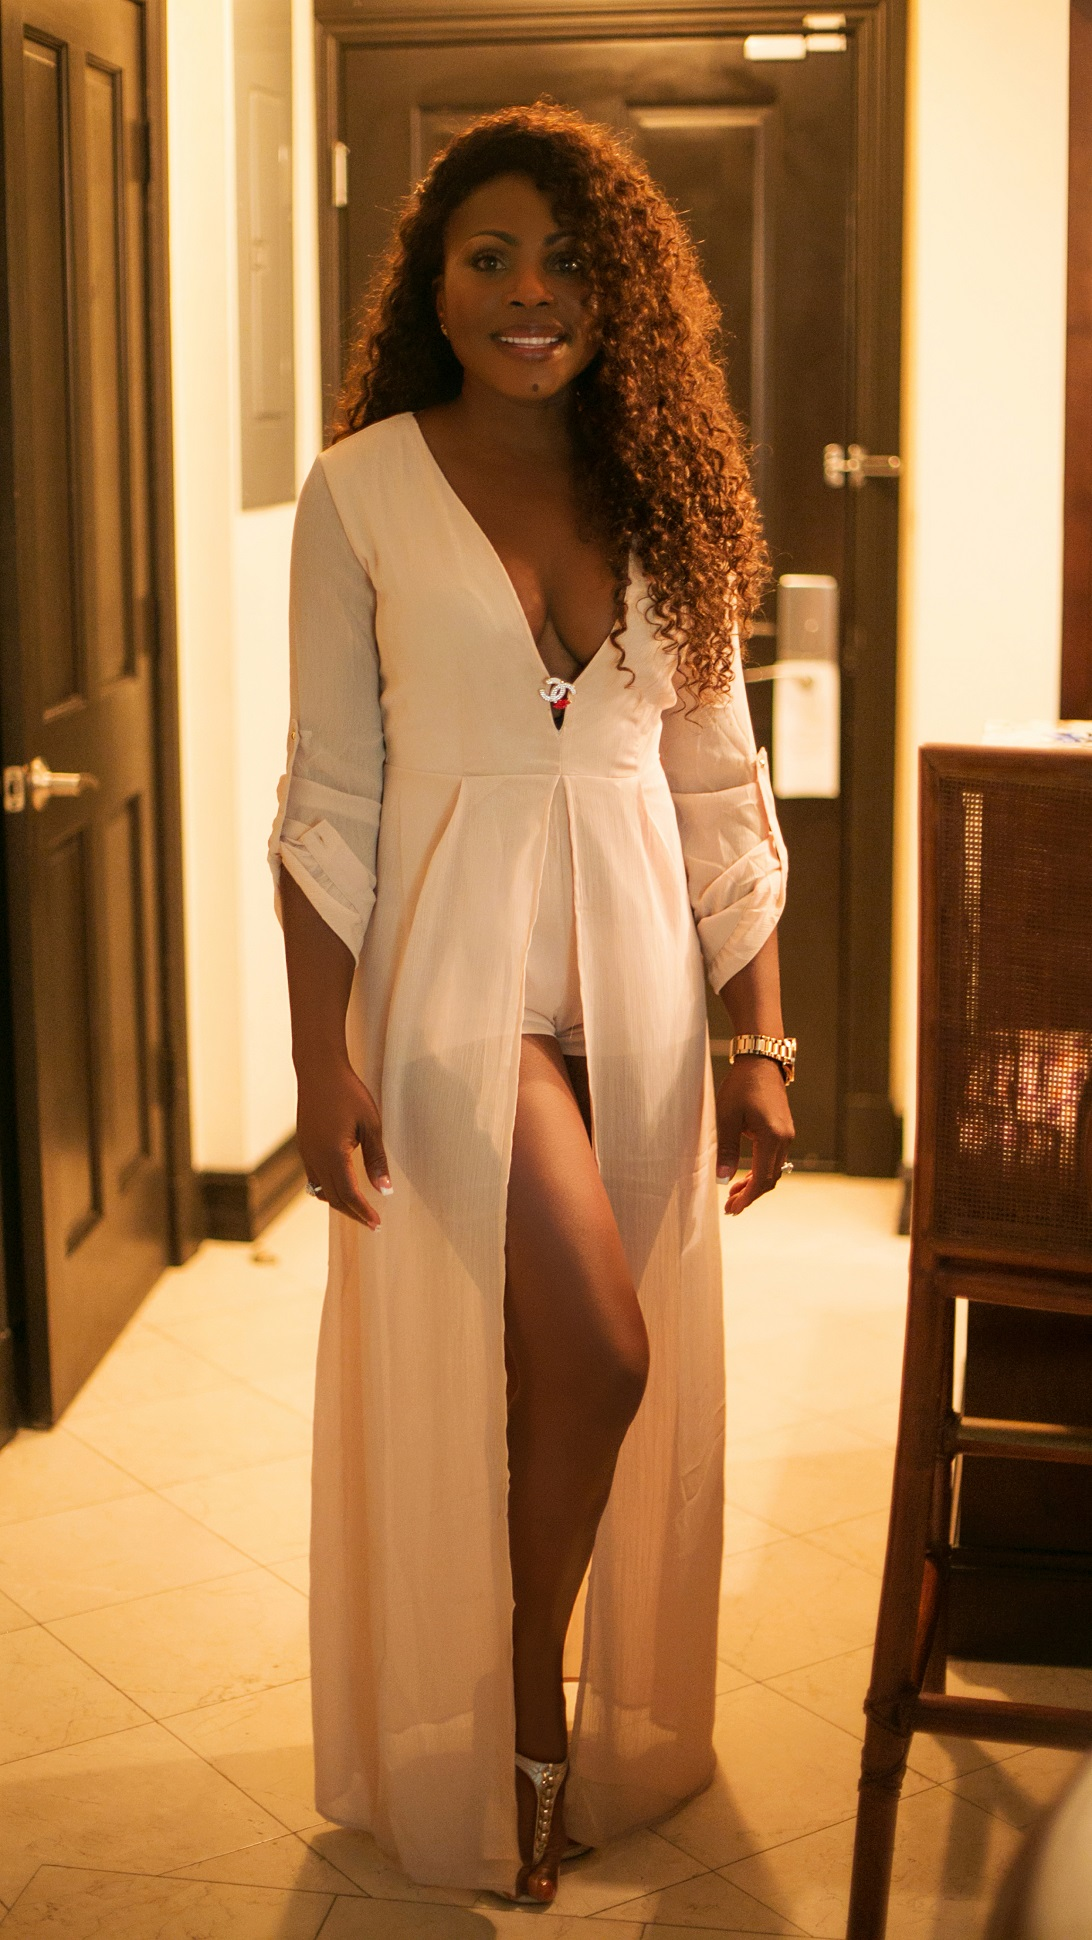 Nude V Neck Chiffon Maxi Romper By Hot Miami Styles